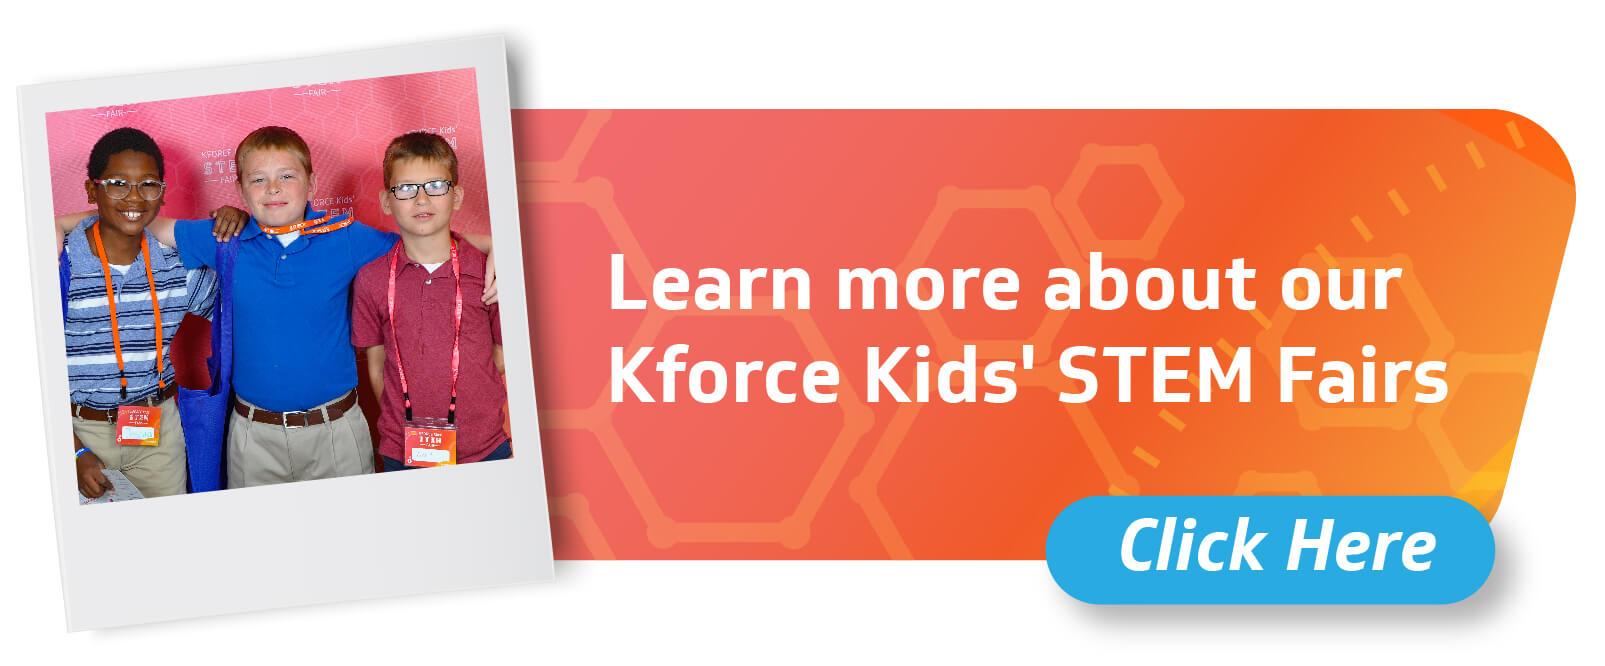 Learn More About Our Kforce Kids' STEM Fairs